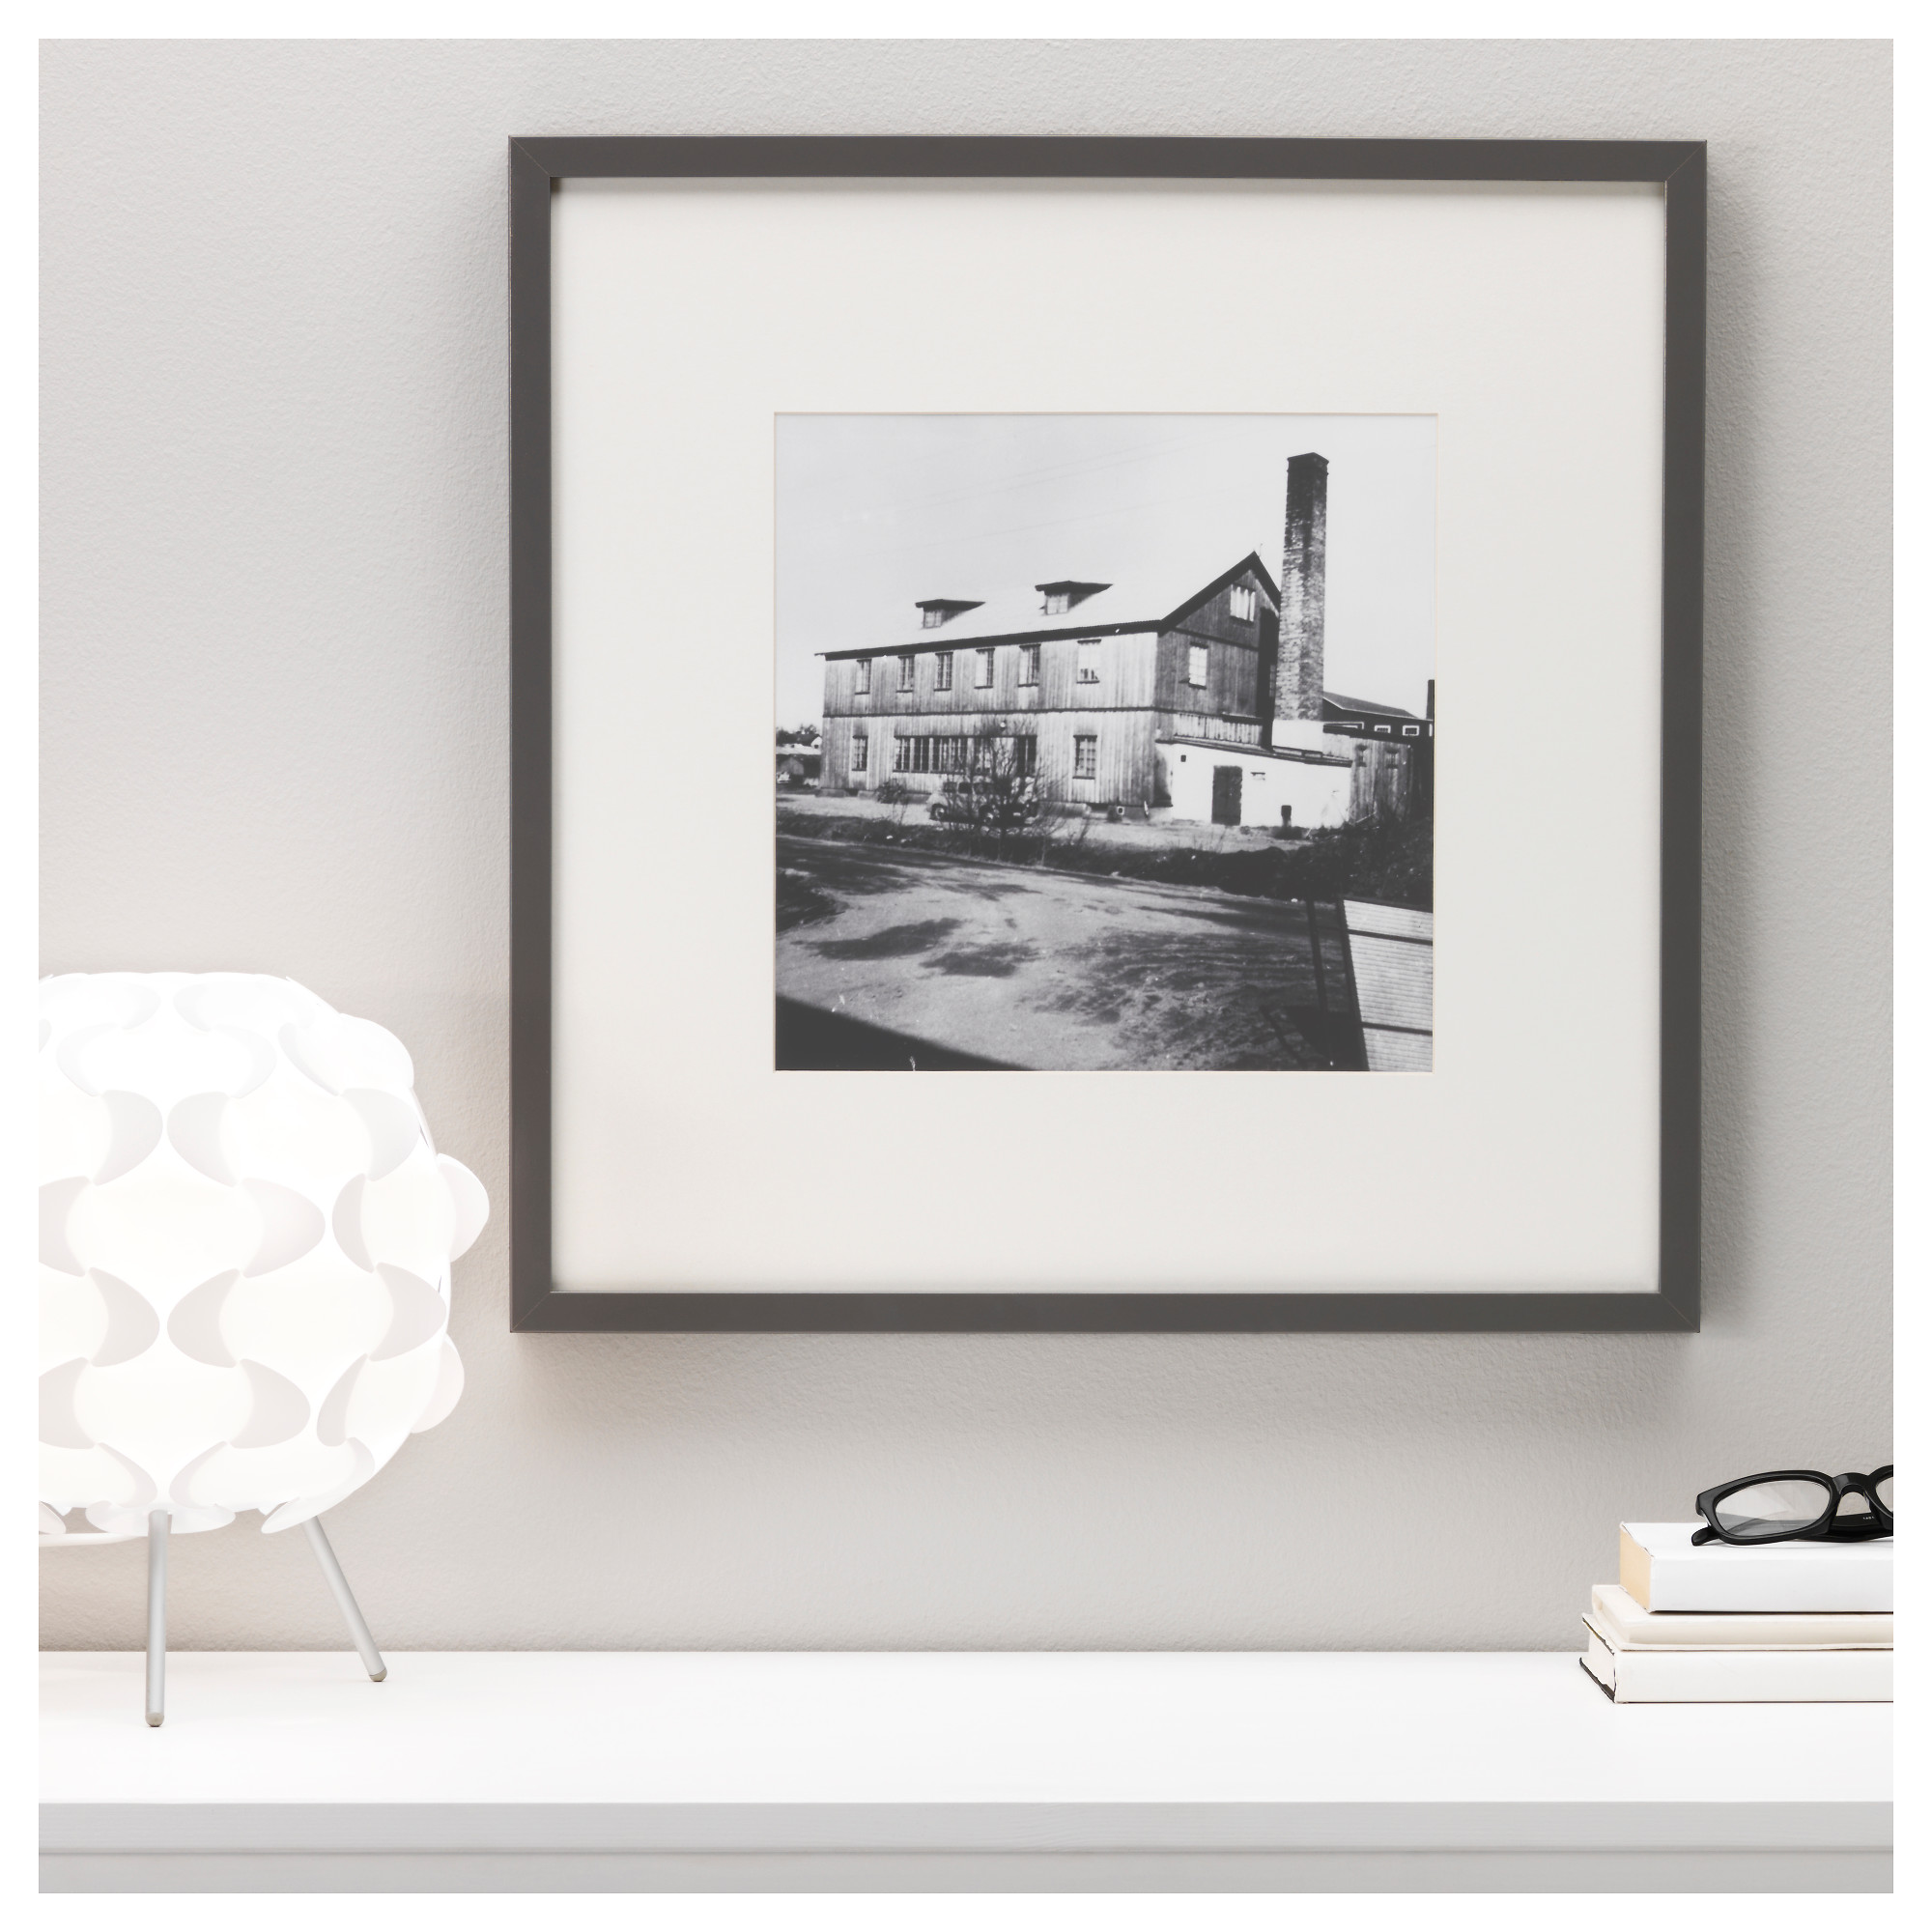 White Floating Picture Frames Best Decor Things